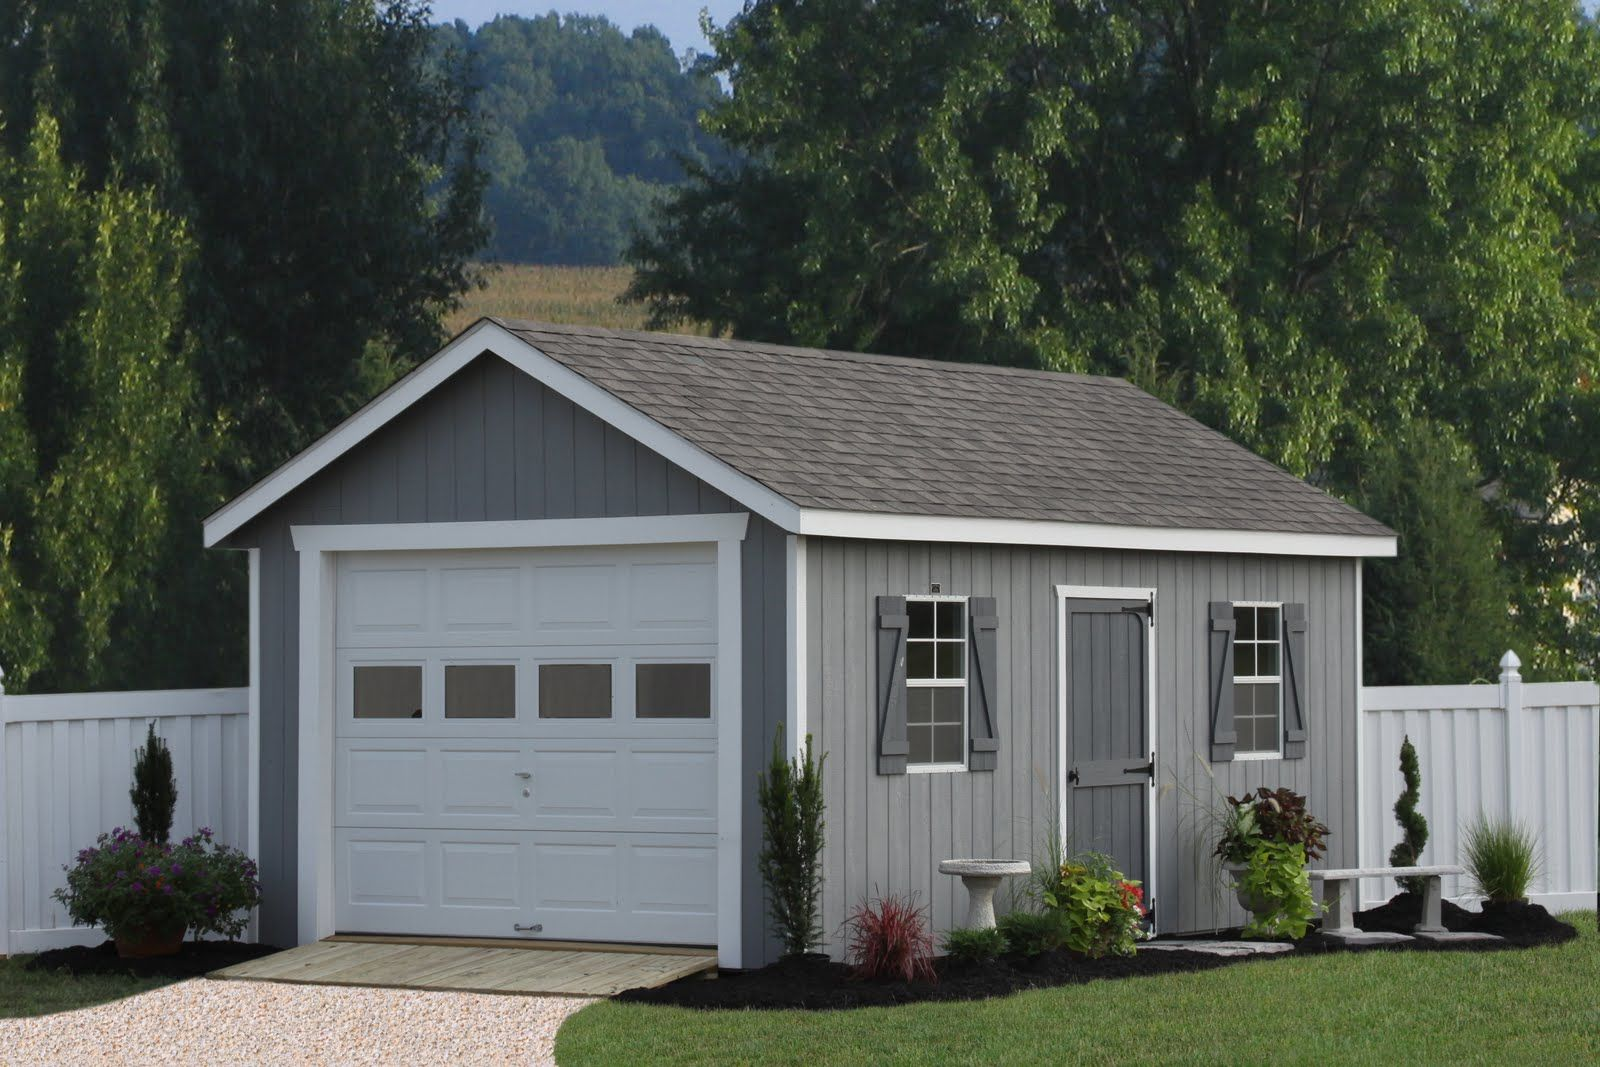 Add on garage plans 12x20 classic one car garage for Small portable shed